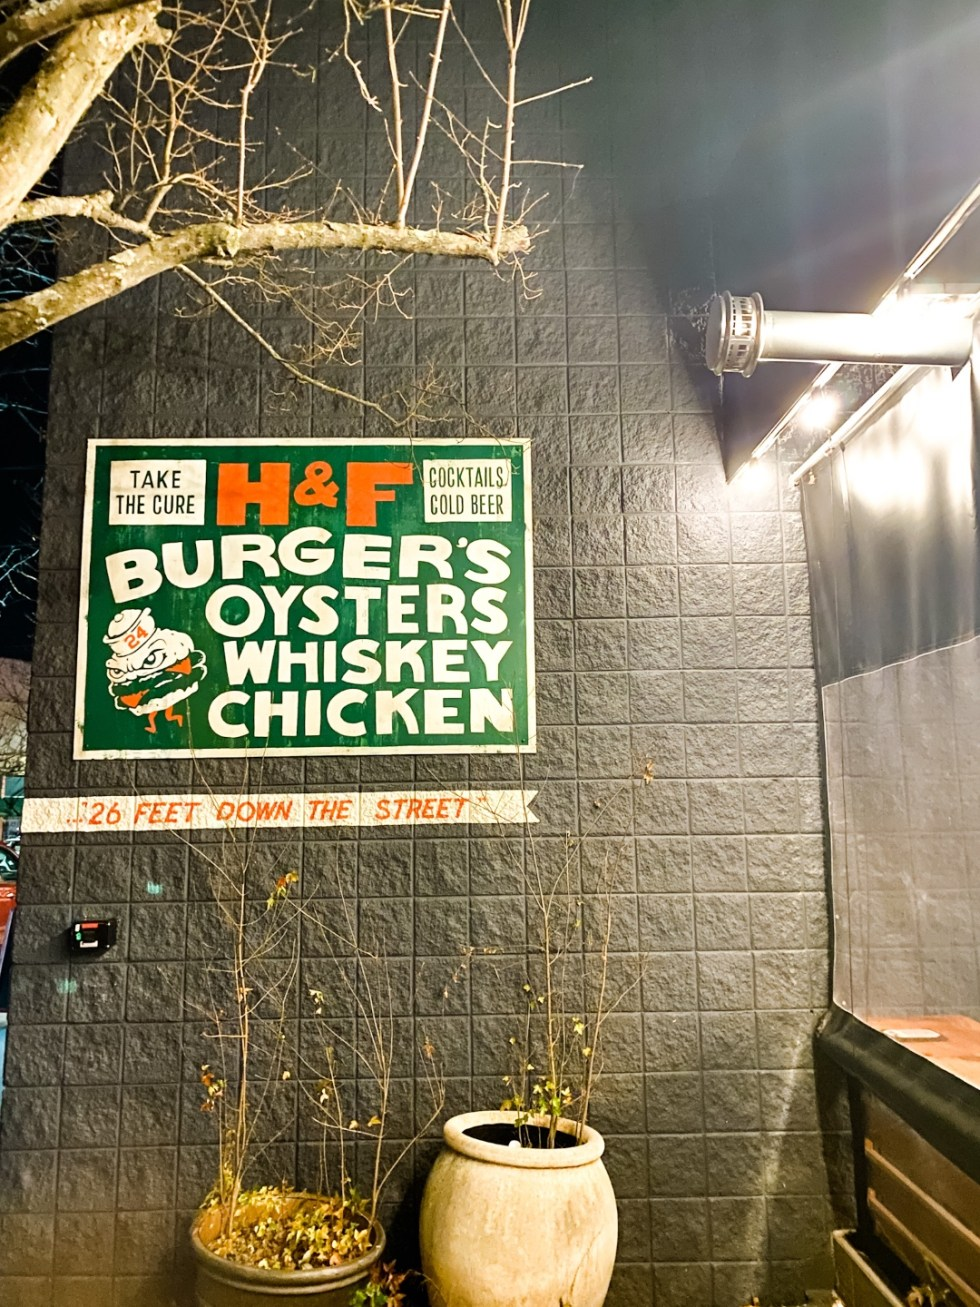 Christmas in Asheville: a Weekend Getaway During the Holidays - I'm Fixin' To - @imfixintoblog |Christmas in Asheville NC by popular NC lifestyle blog, I'm Fixin' To: image of H&F Burger's Oysters Whiskey Chicken.